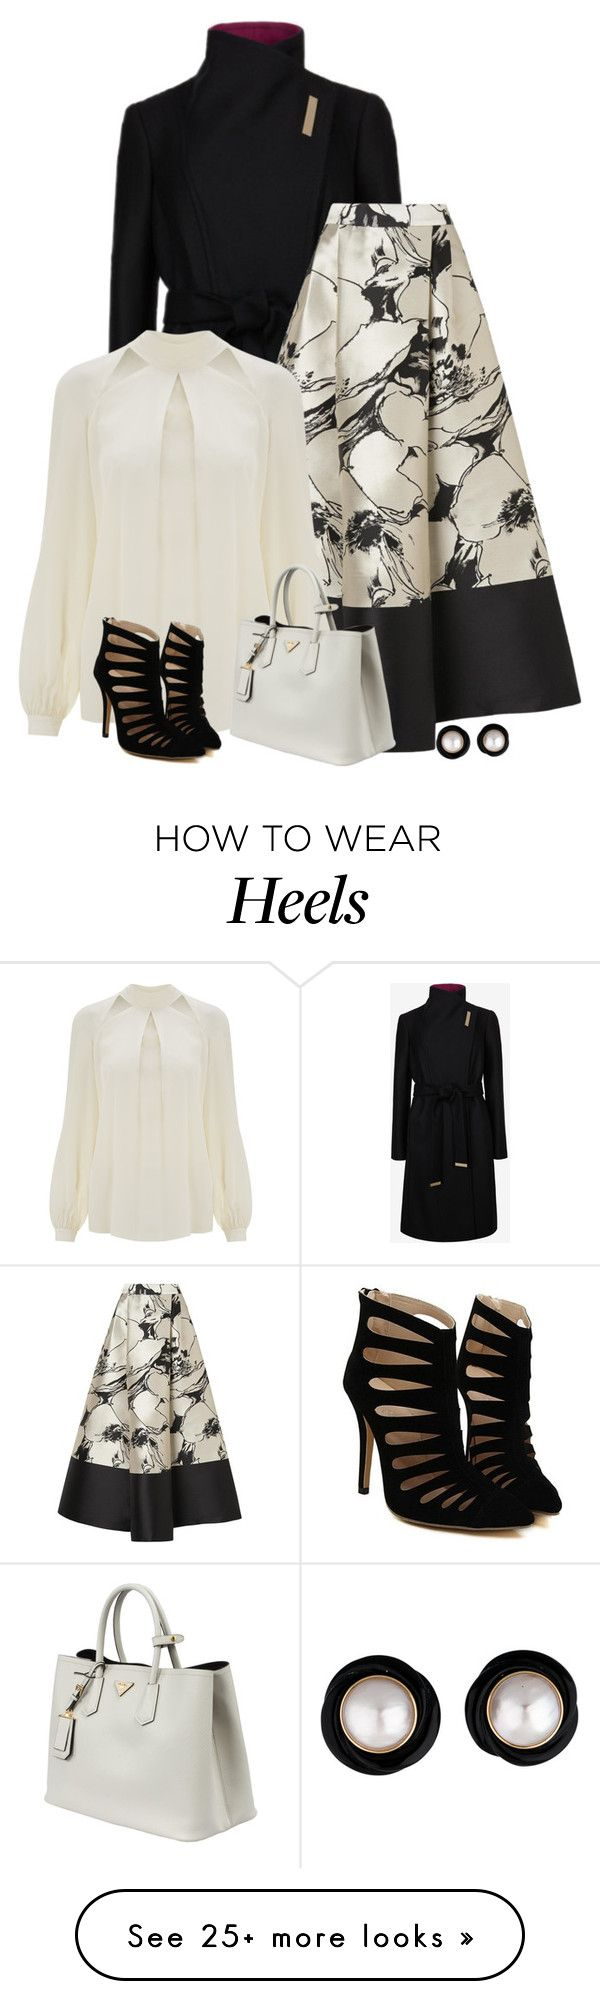 """chic"" by divacrafts on Polyvore featuring Ted Baker, L.K.Bennett, Temperley London, Prada and Original"